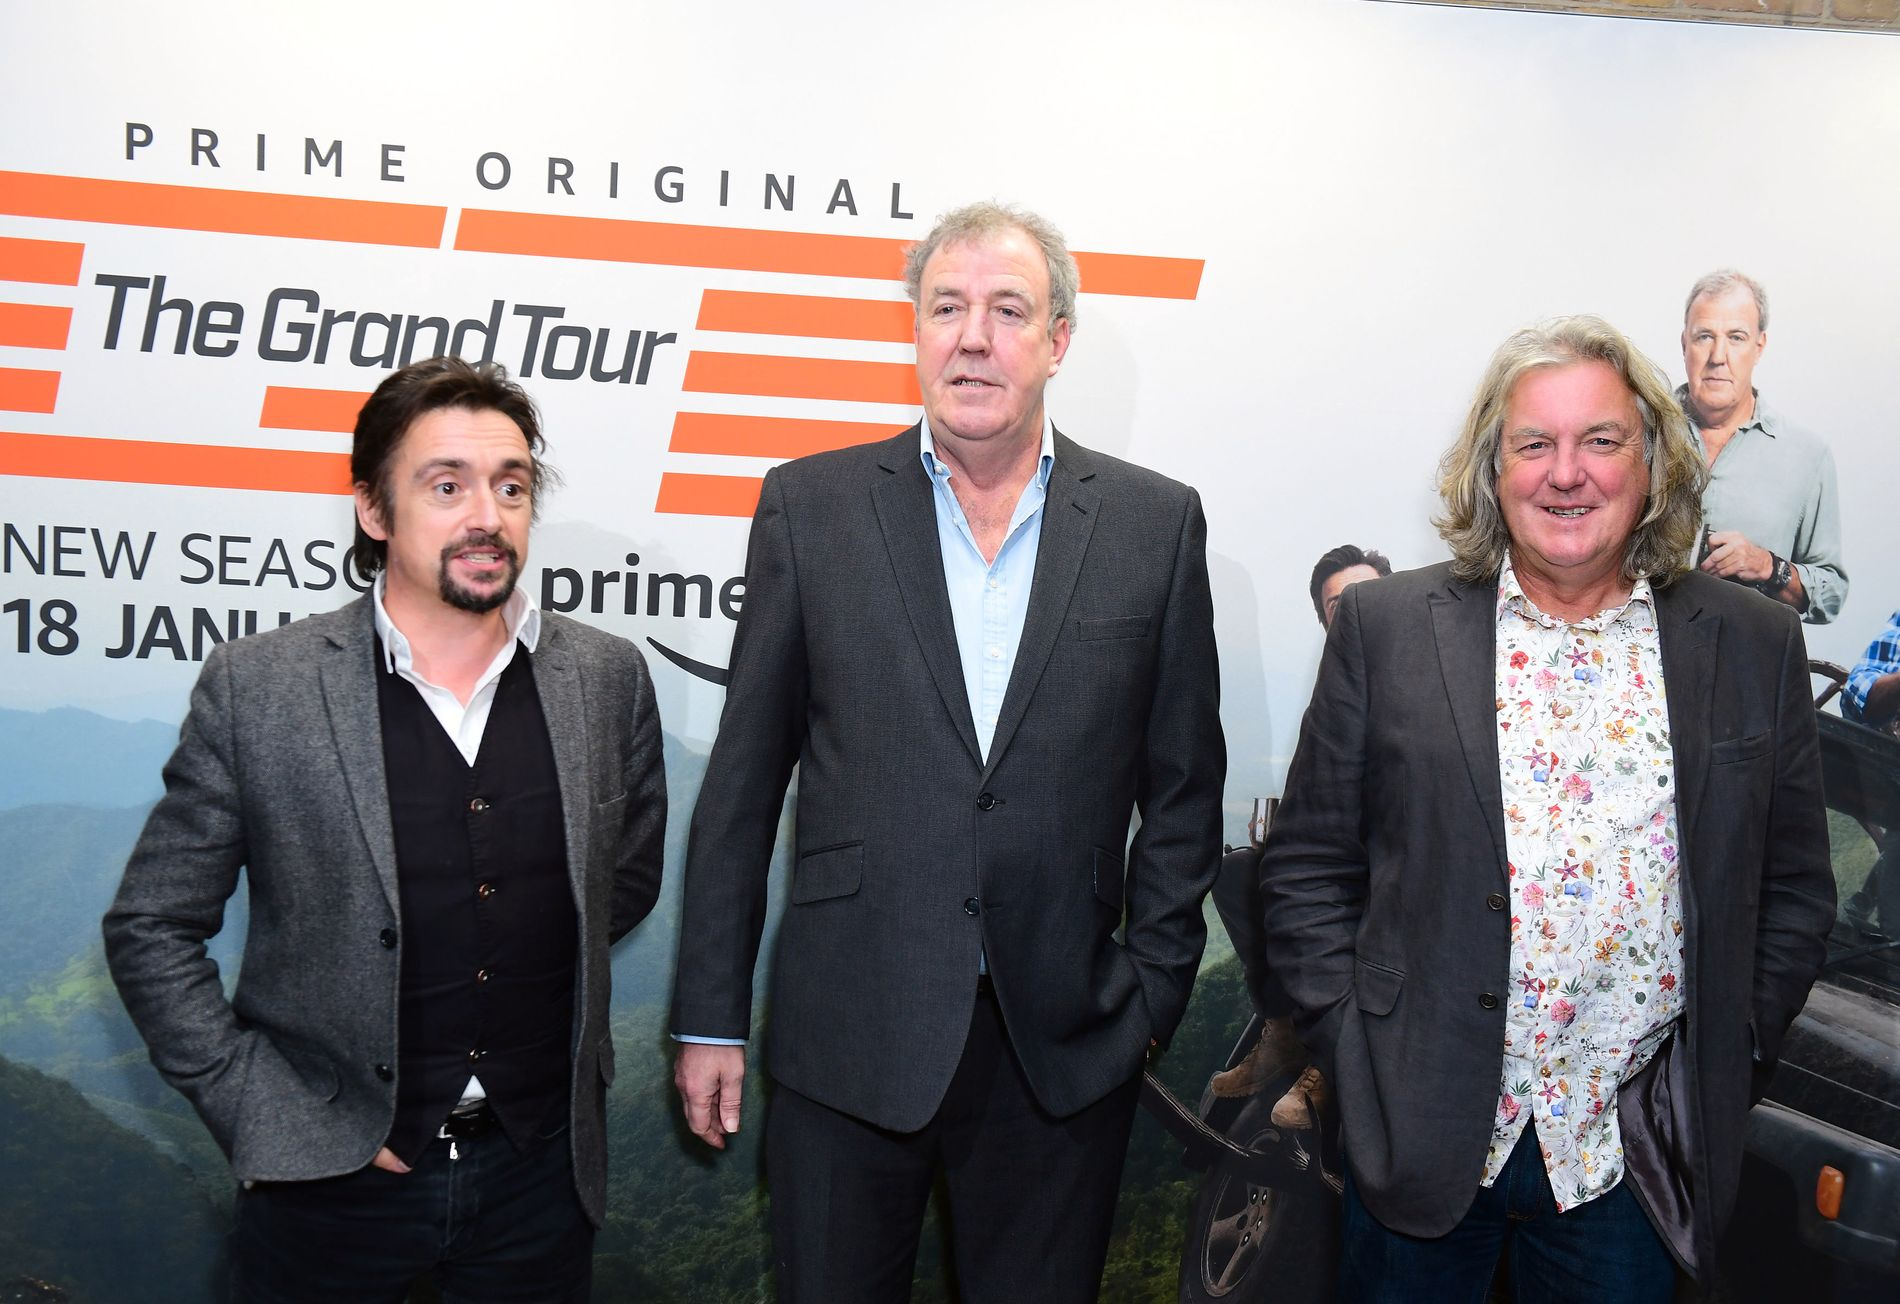 TOP GEAR: Richard Hammond (f.v.), Jeremy Clarkson og James May gjorde stor suksess i Top Gear. Her er de i forbindelse med lanseringen av The Grand Tour Series 3, som Clarkson nå er programleder for.